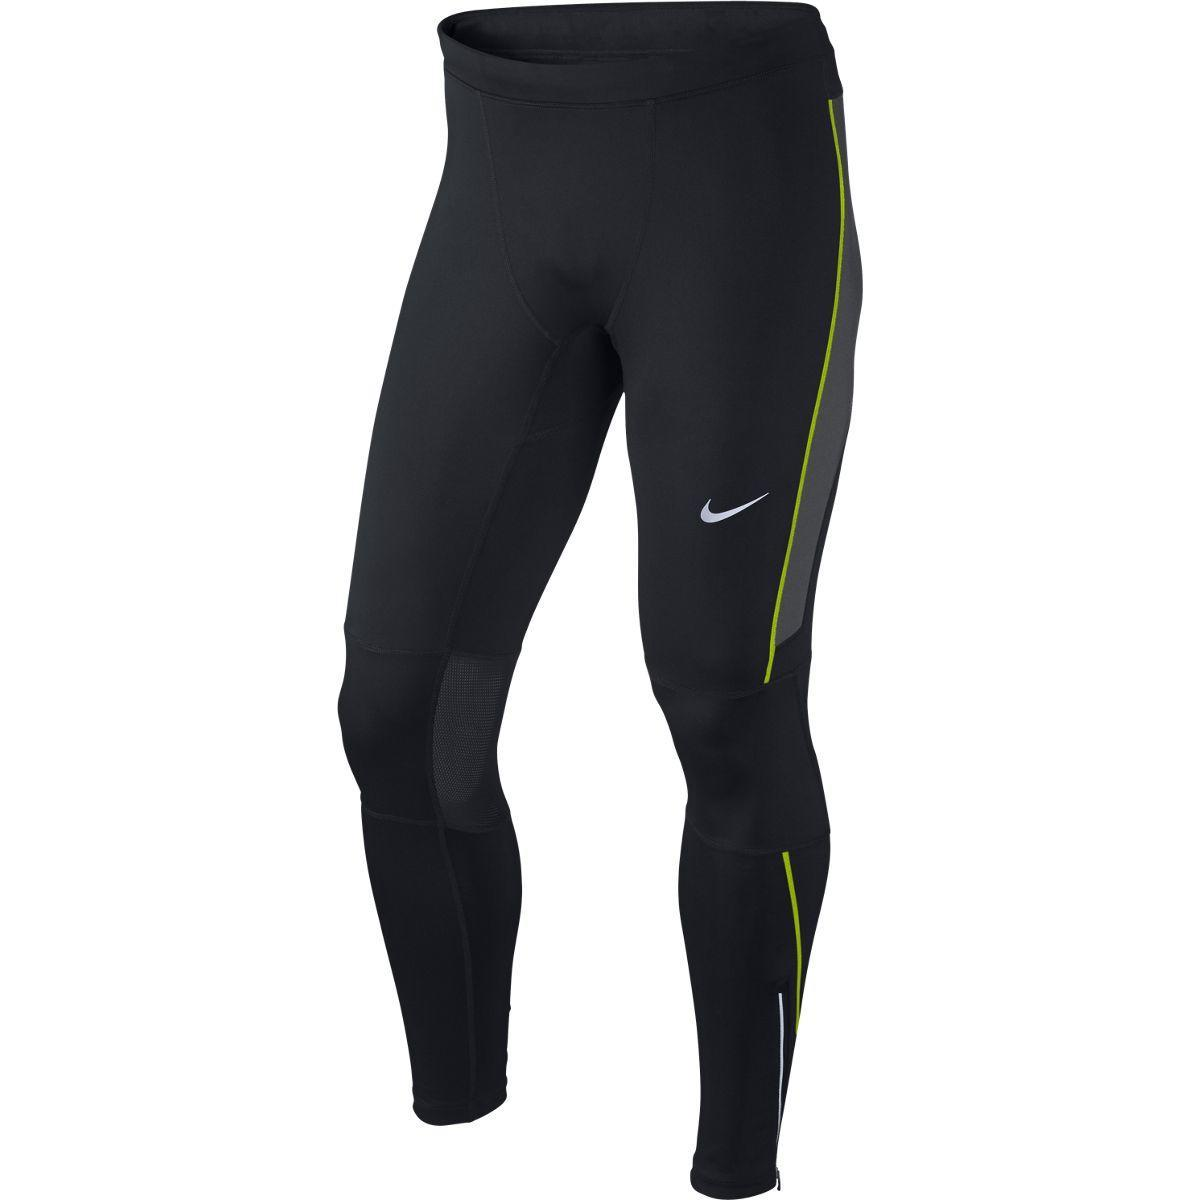 Nike Mens Dri-FIT Essential Running Tights - Black/Anthracite